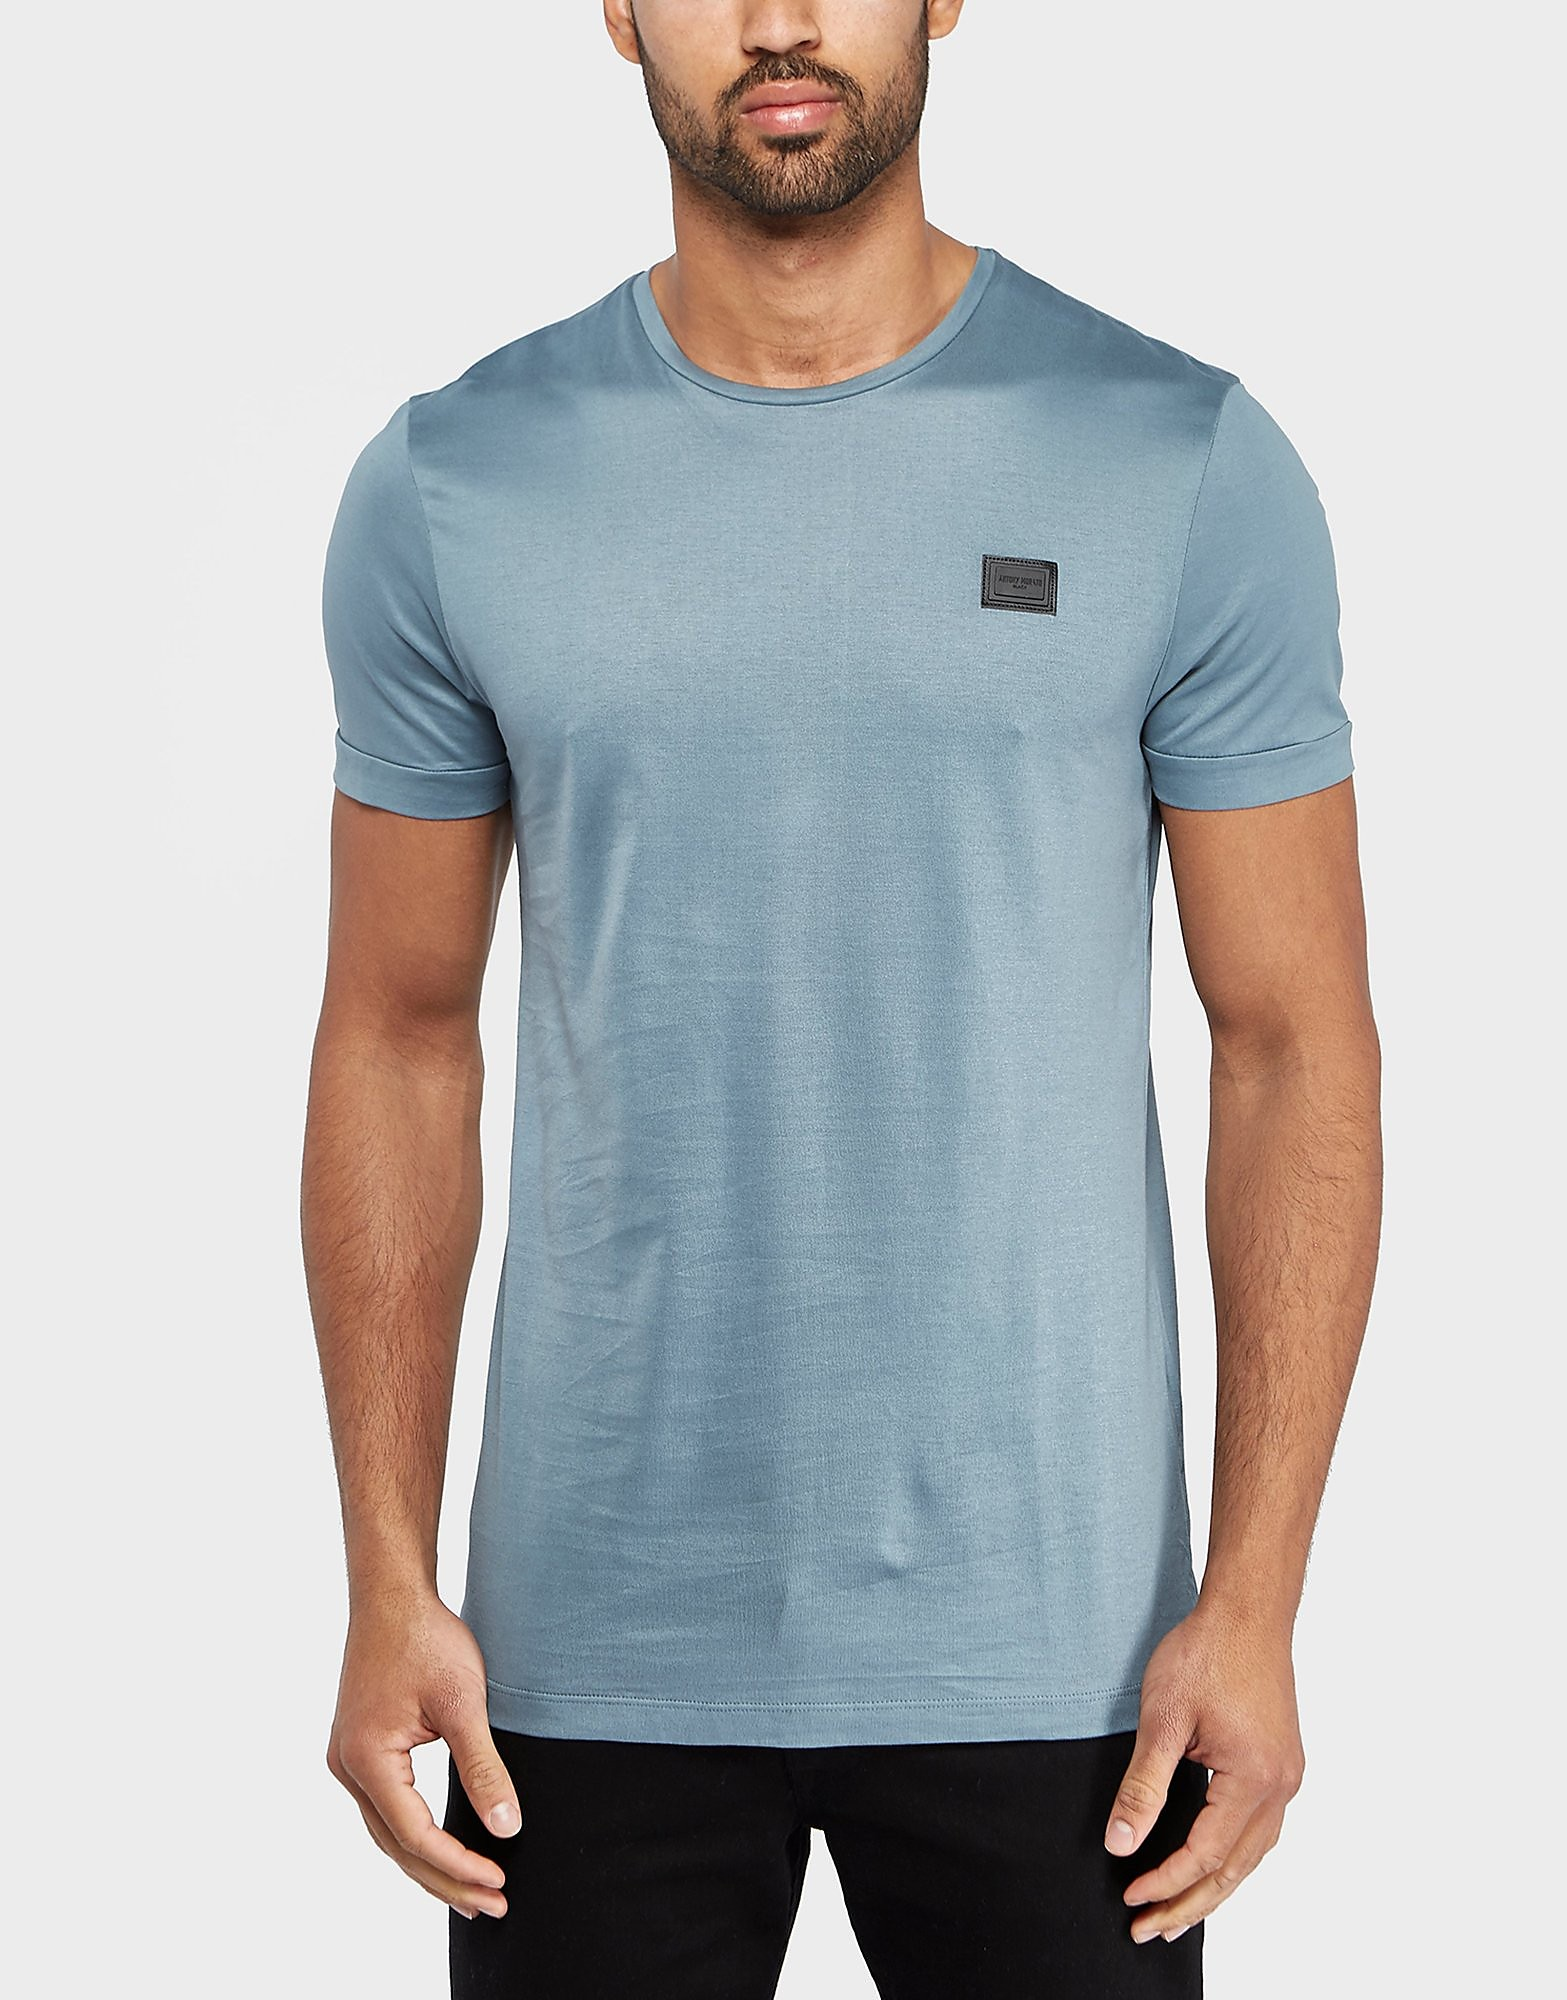 Antony Morato Plaque Short Sleeve TShirt  Light Blue Light Blue